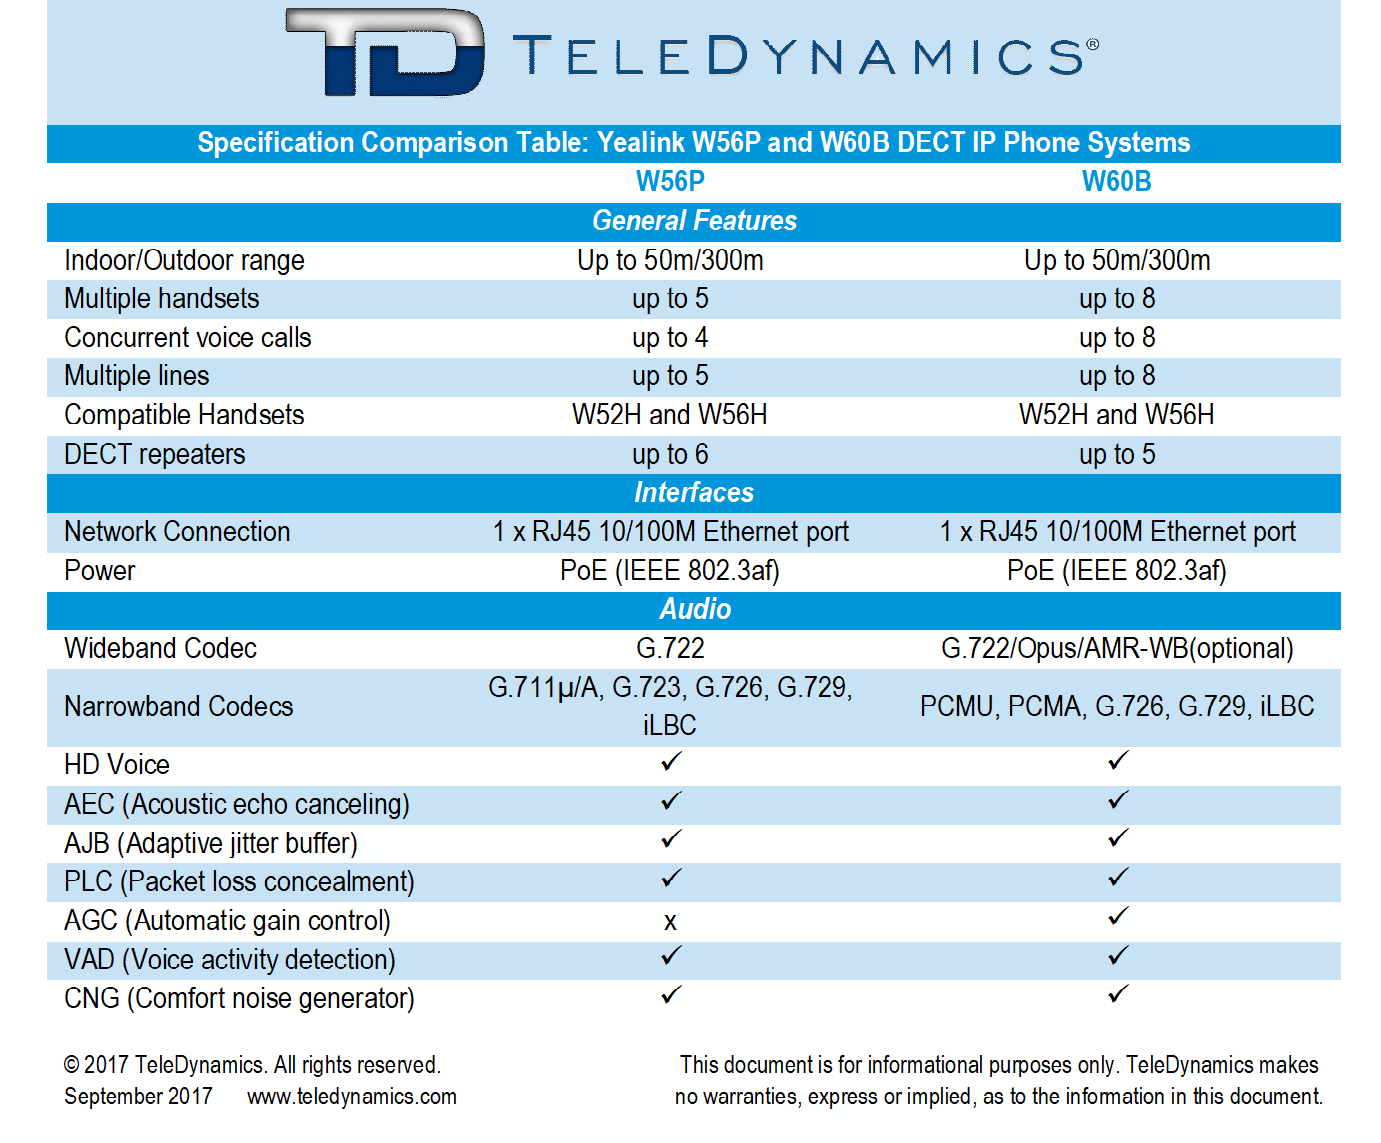 Yealink W56P and W60B DECT IP phone specification comparison